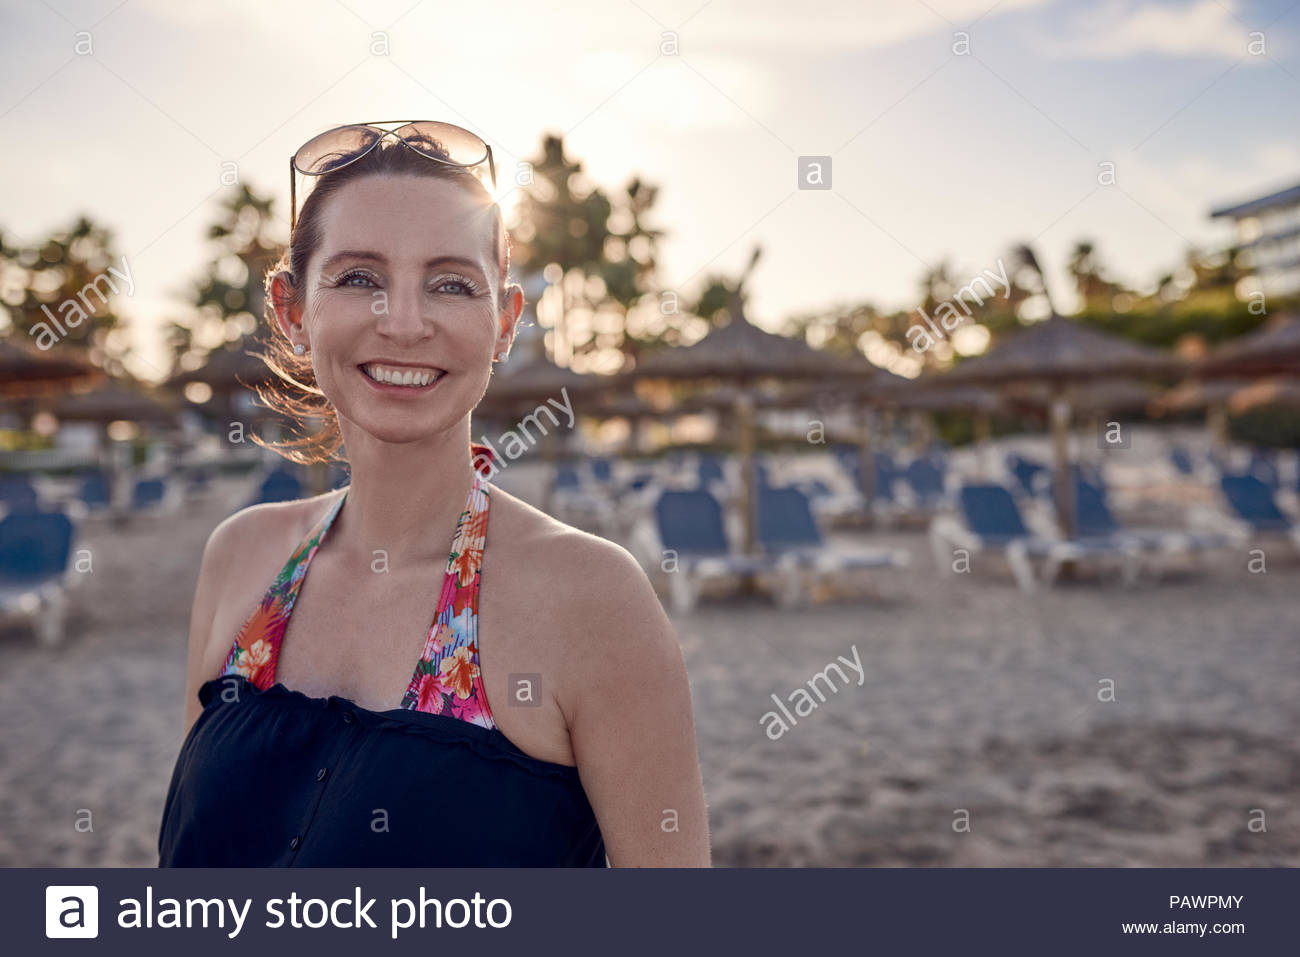 Portrait of smiling young woman at beach - Stock Image